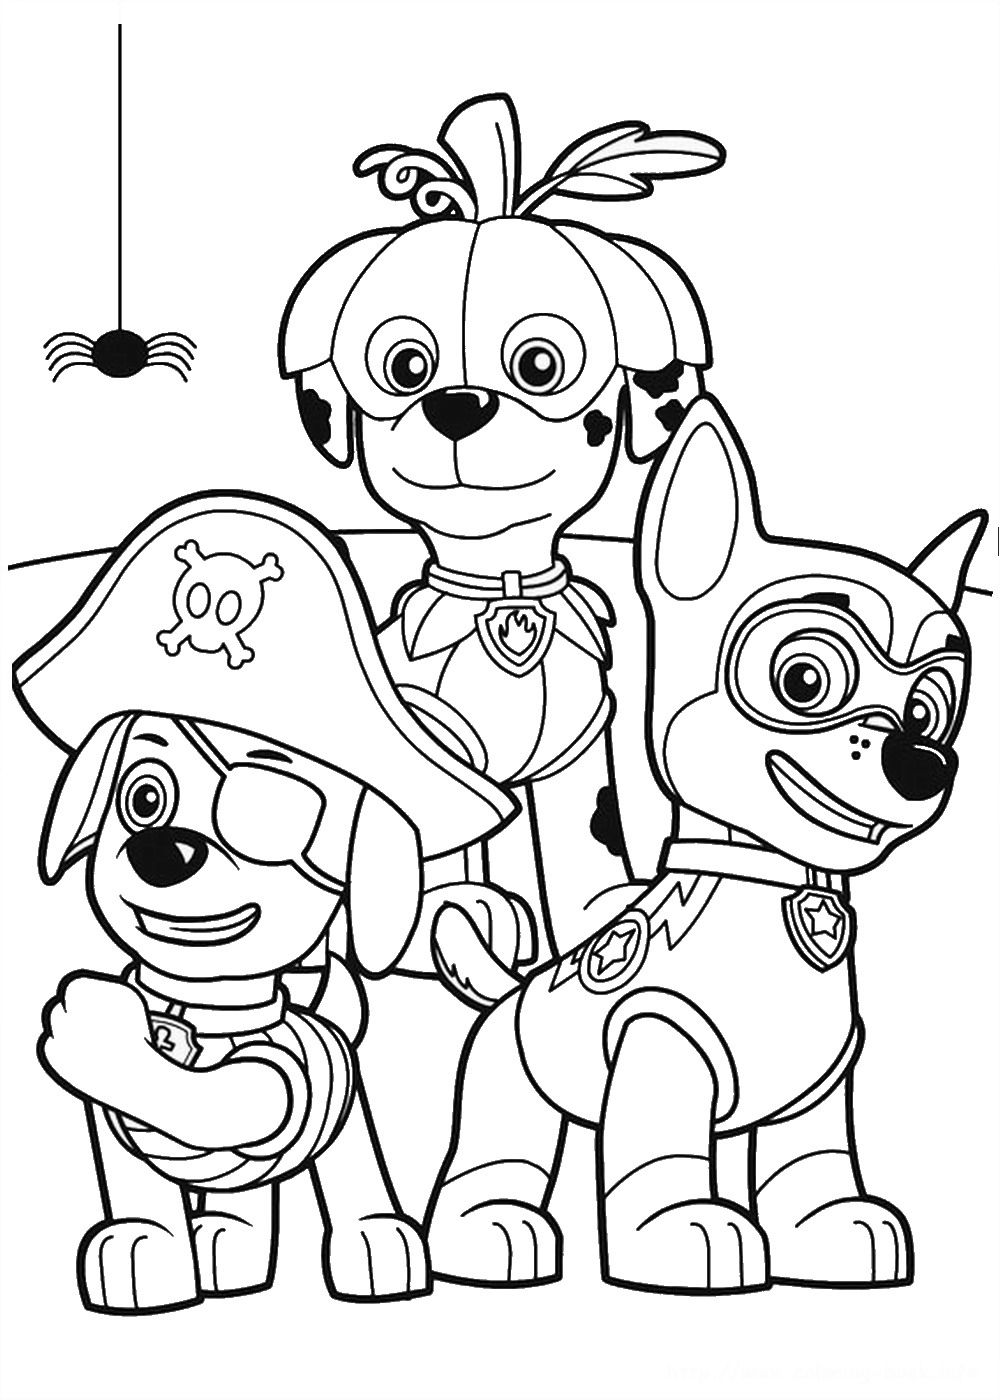 a cool vampire kid coloring page for halloween lots of halloween